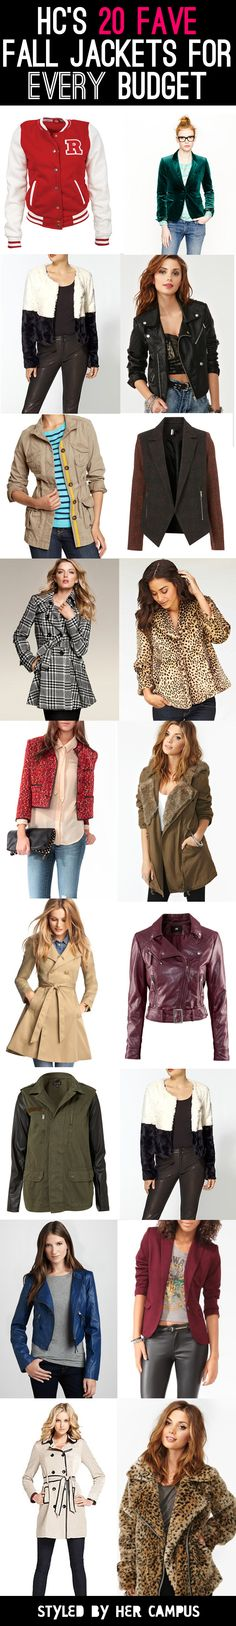 Starting to get chilly? Here are HC's 20 Fave Fall Jackets for EVERY Budget!